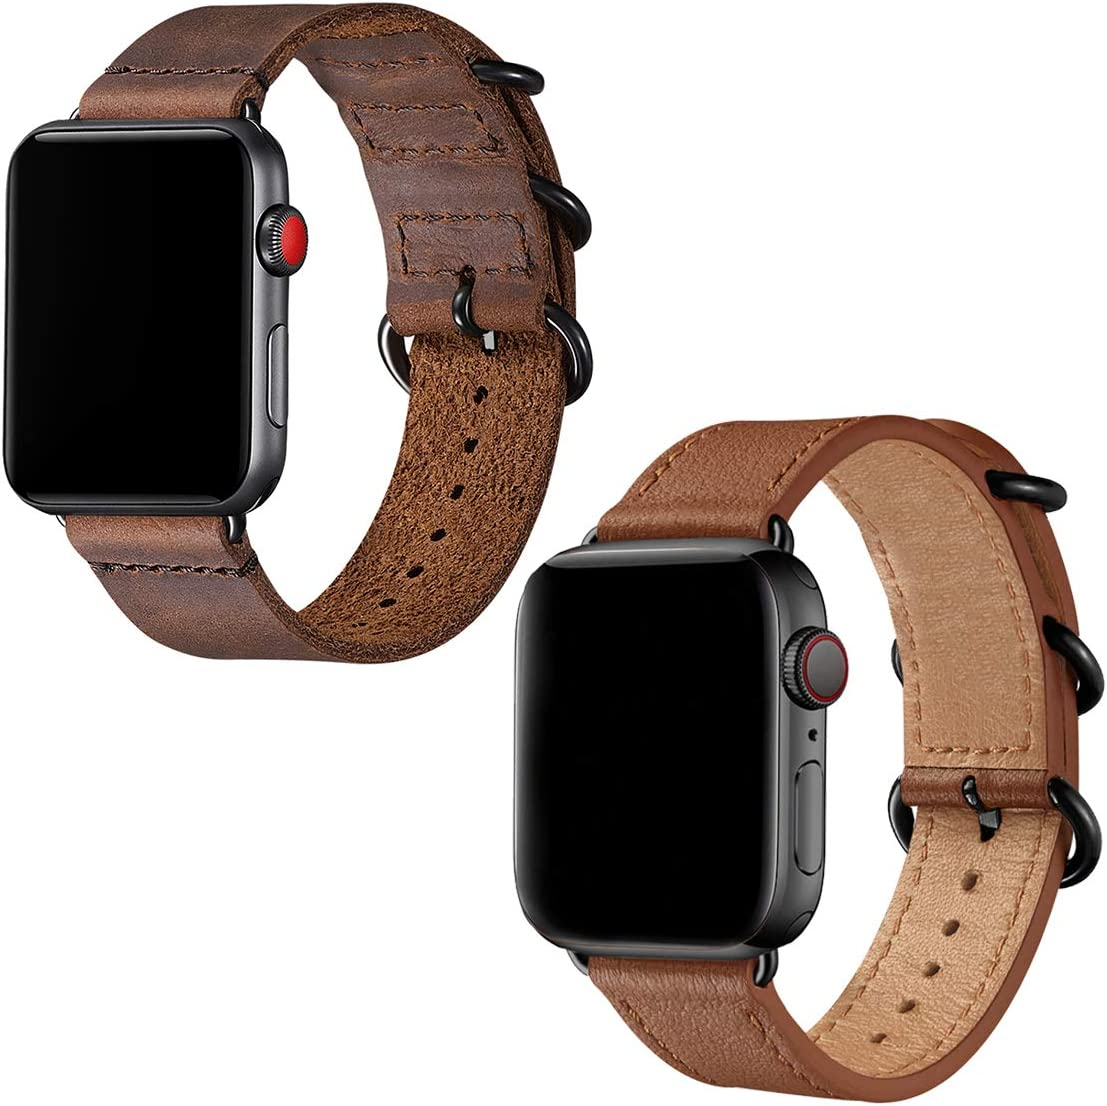 Leather Bands Compatible with Apple Watch band 42mm 44mm,Genuine Leather Strap Compatible for Men Women iWatch Series5 Series4/3/2/1(Brown+Black connector,42mm 44mm)